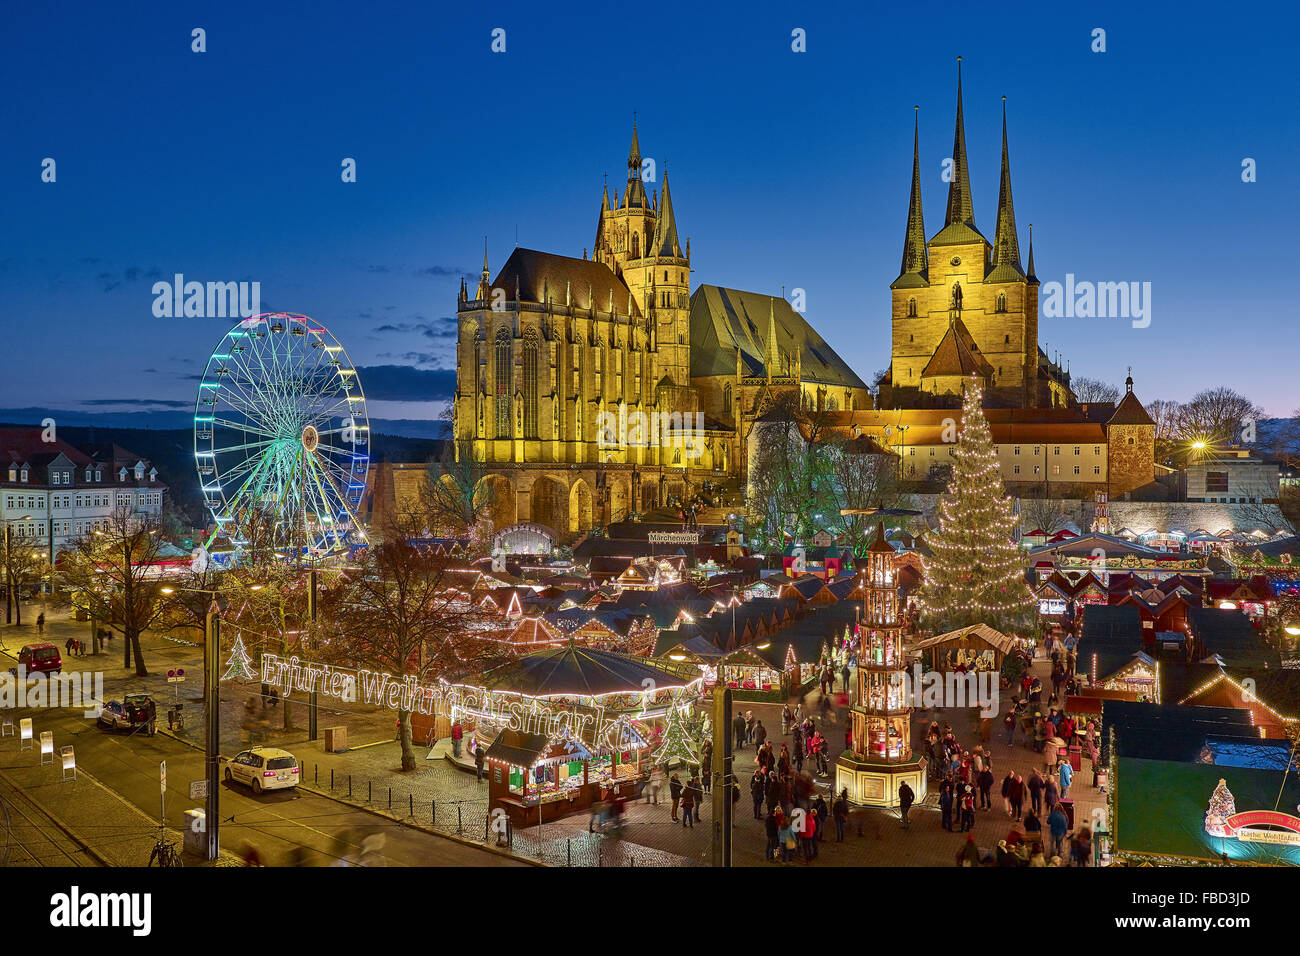 erfurt christmas market thuringia germany stock photo royalty free image 93101301 alamy. Black Bedroom Furniture Sets. Home Design Ideas